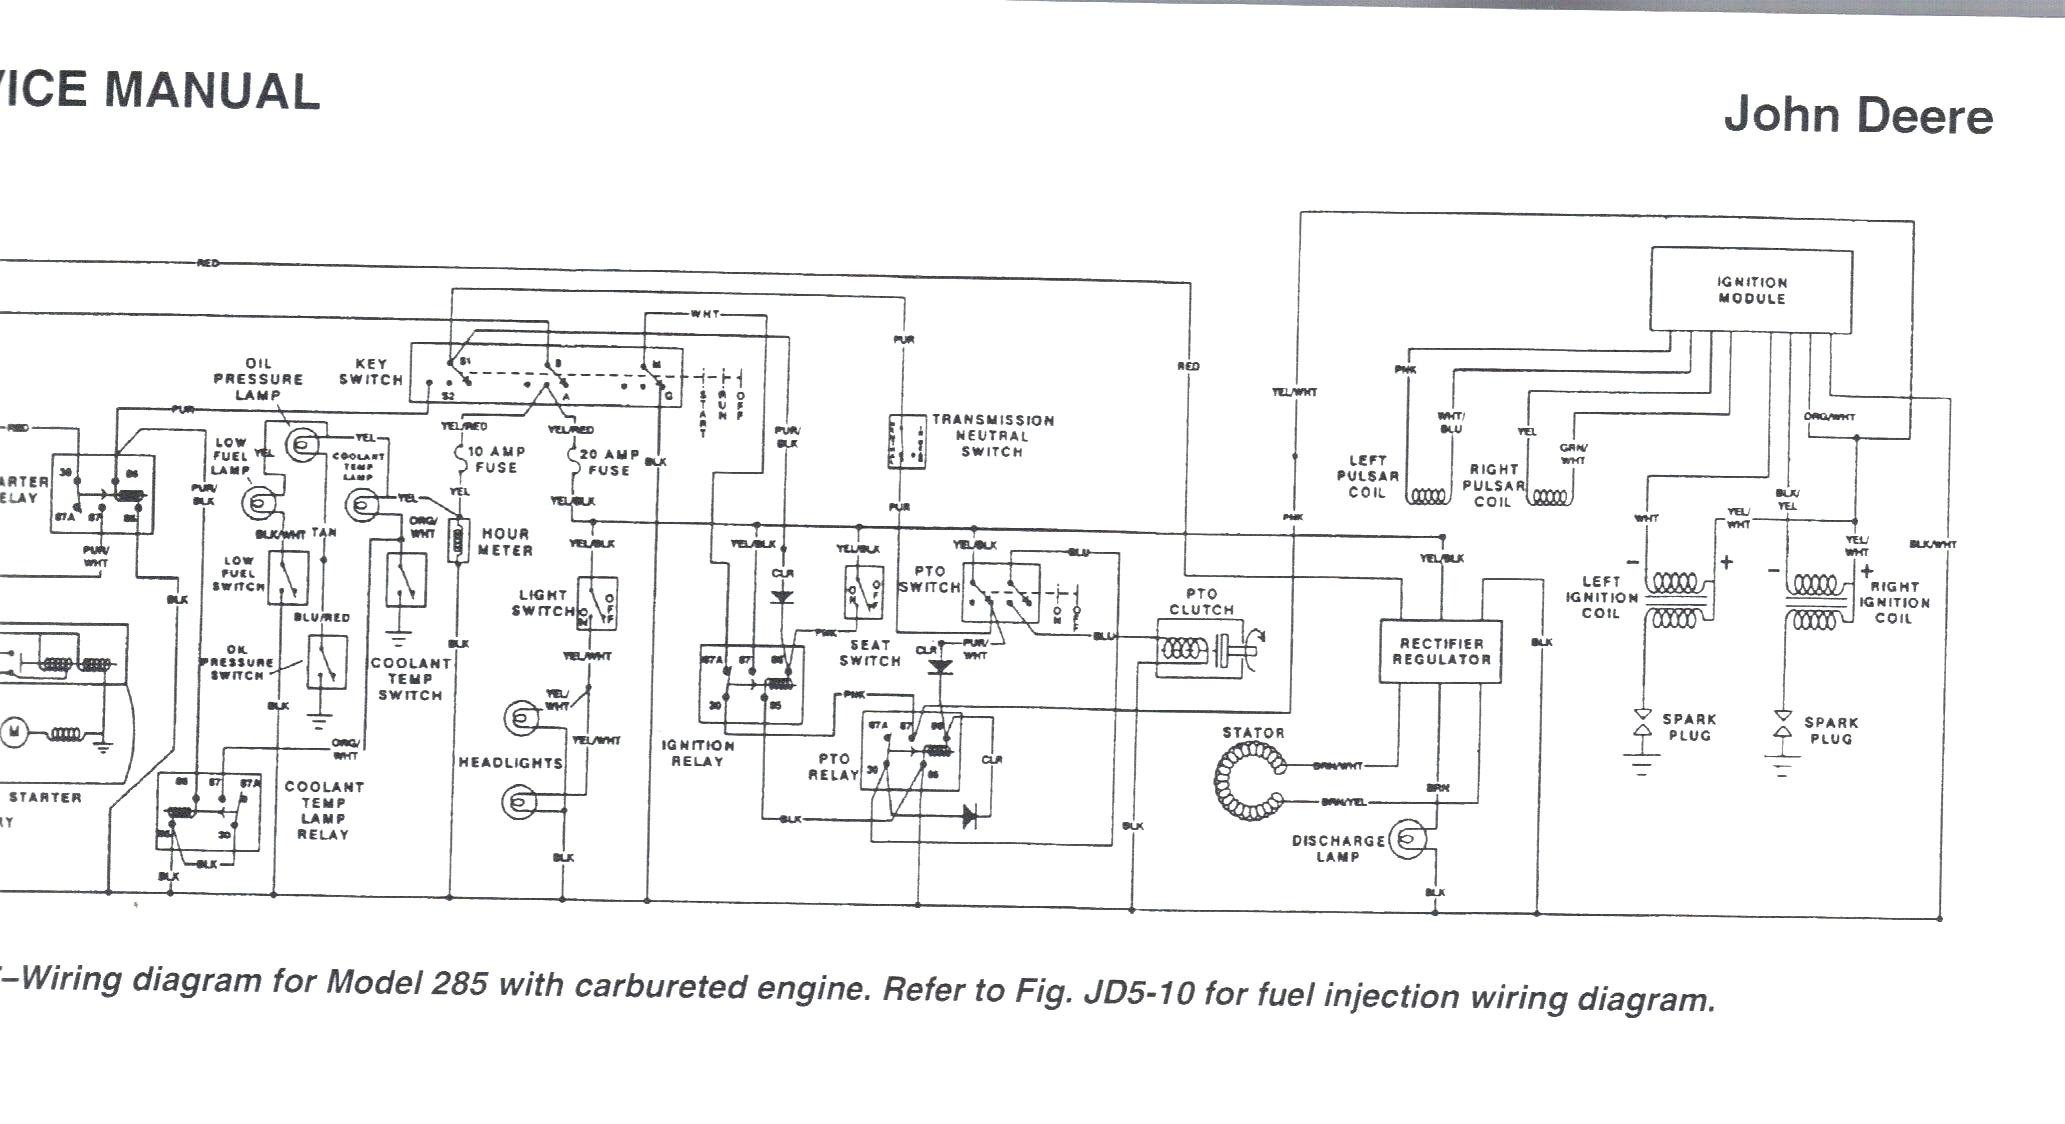 john deere 4100 wiring diagram wiring diagram rh aiandco co